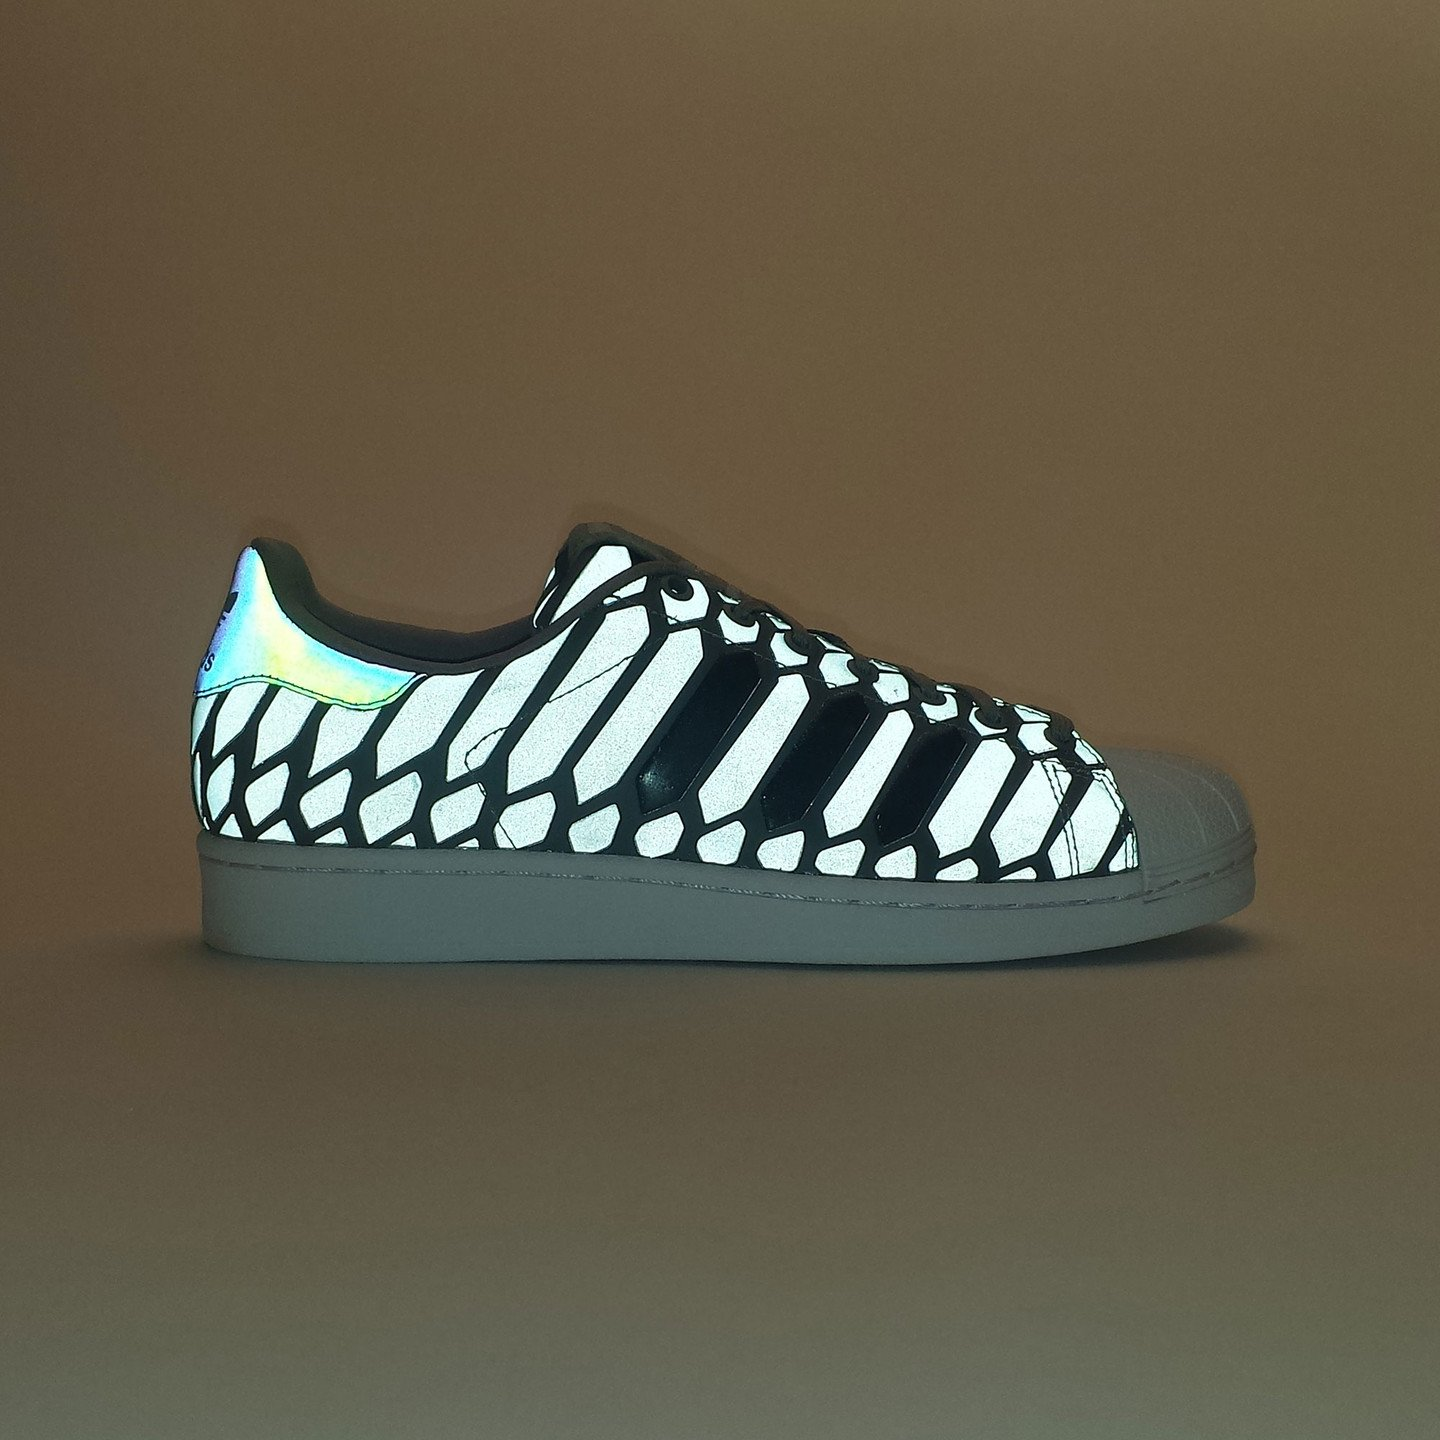 Adidas Superstar Xeno Pack Ltonix / Supcol / Ftwwht D69367-36